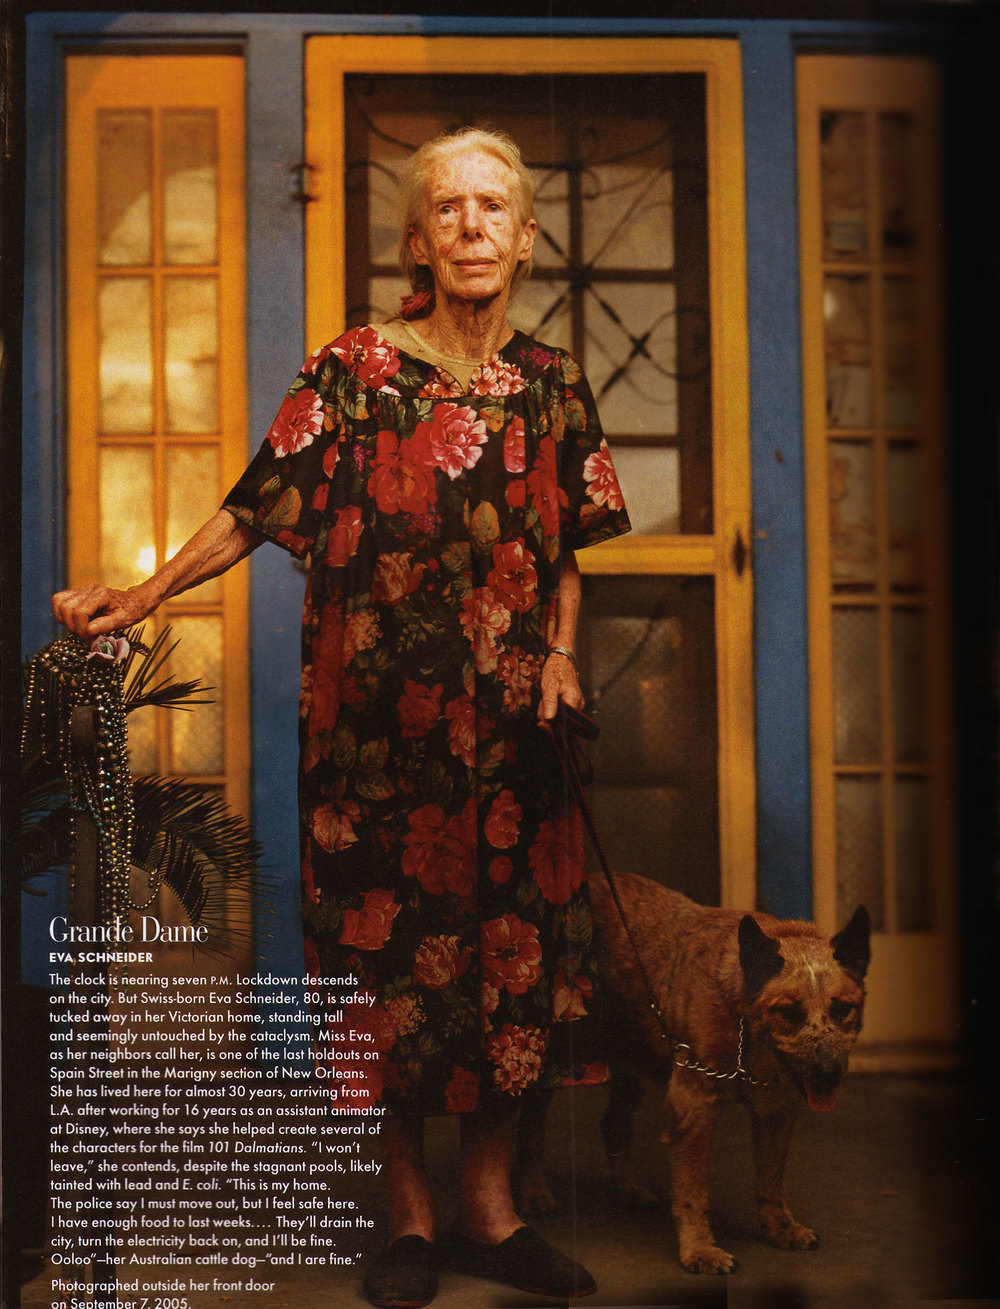 Survivor, Eva Schneider. Eva's full-page color photo appeared in the 2005 September issue of Vanity Fair, as she stood triumphant on her front porch, with her dog by her side.